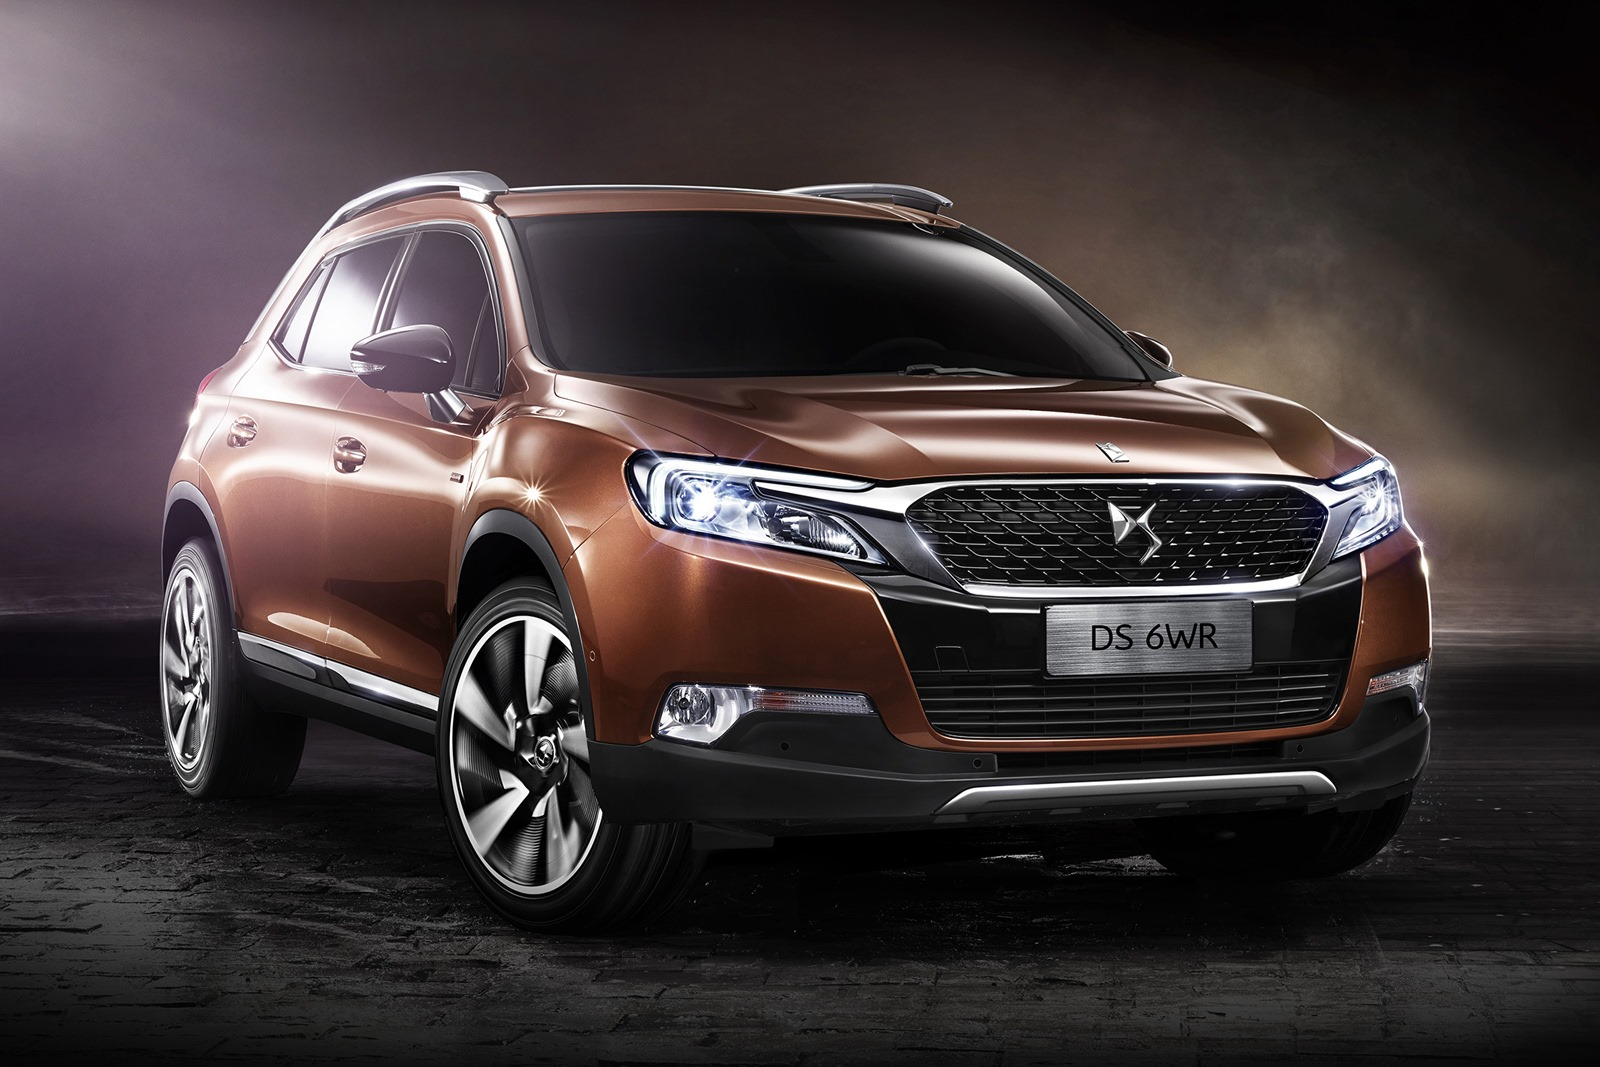 Ds 6wr First French Luxury Suv Interior Revealed In China